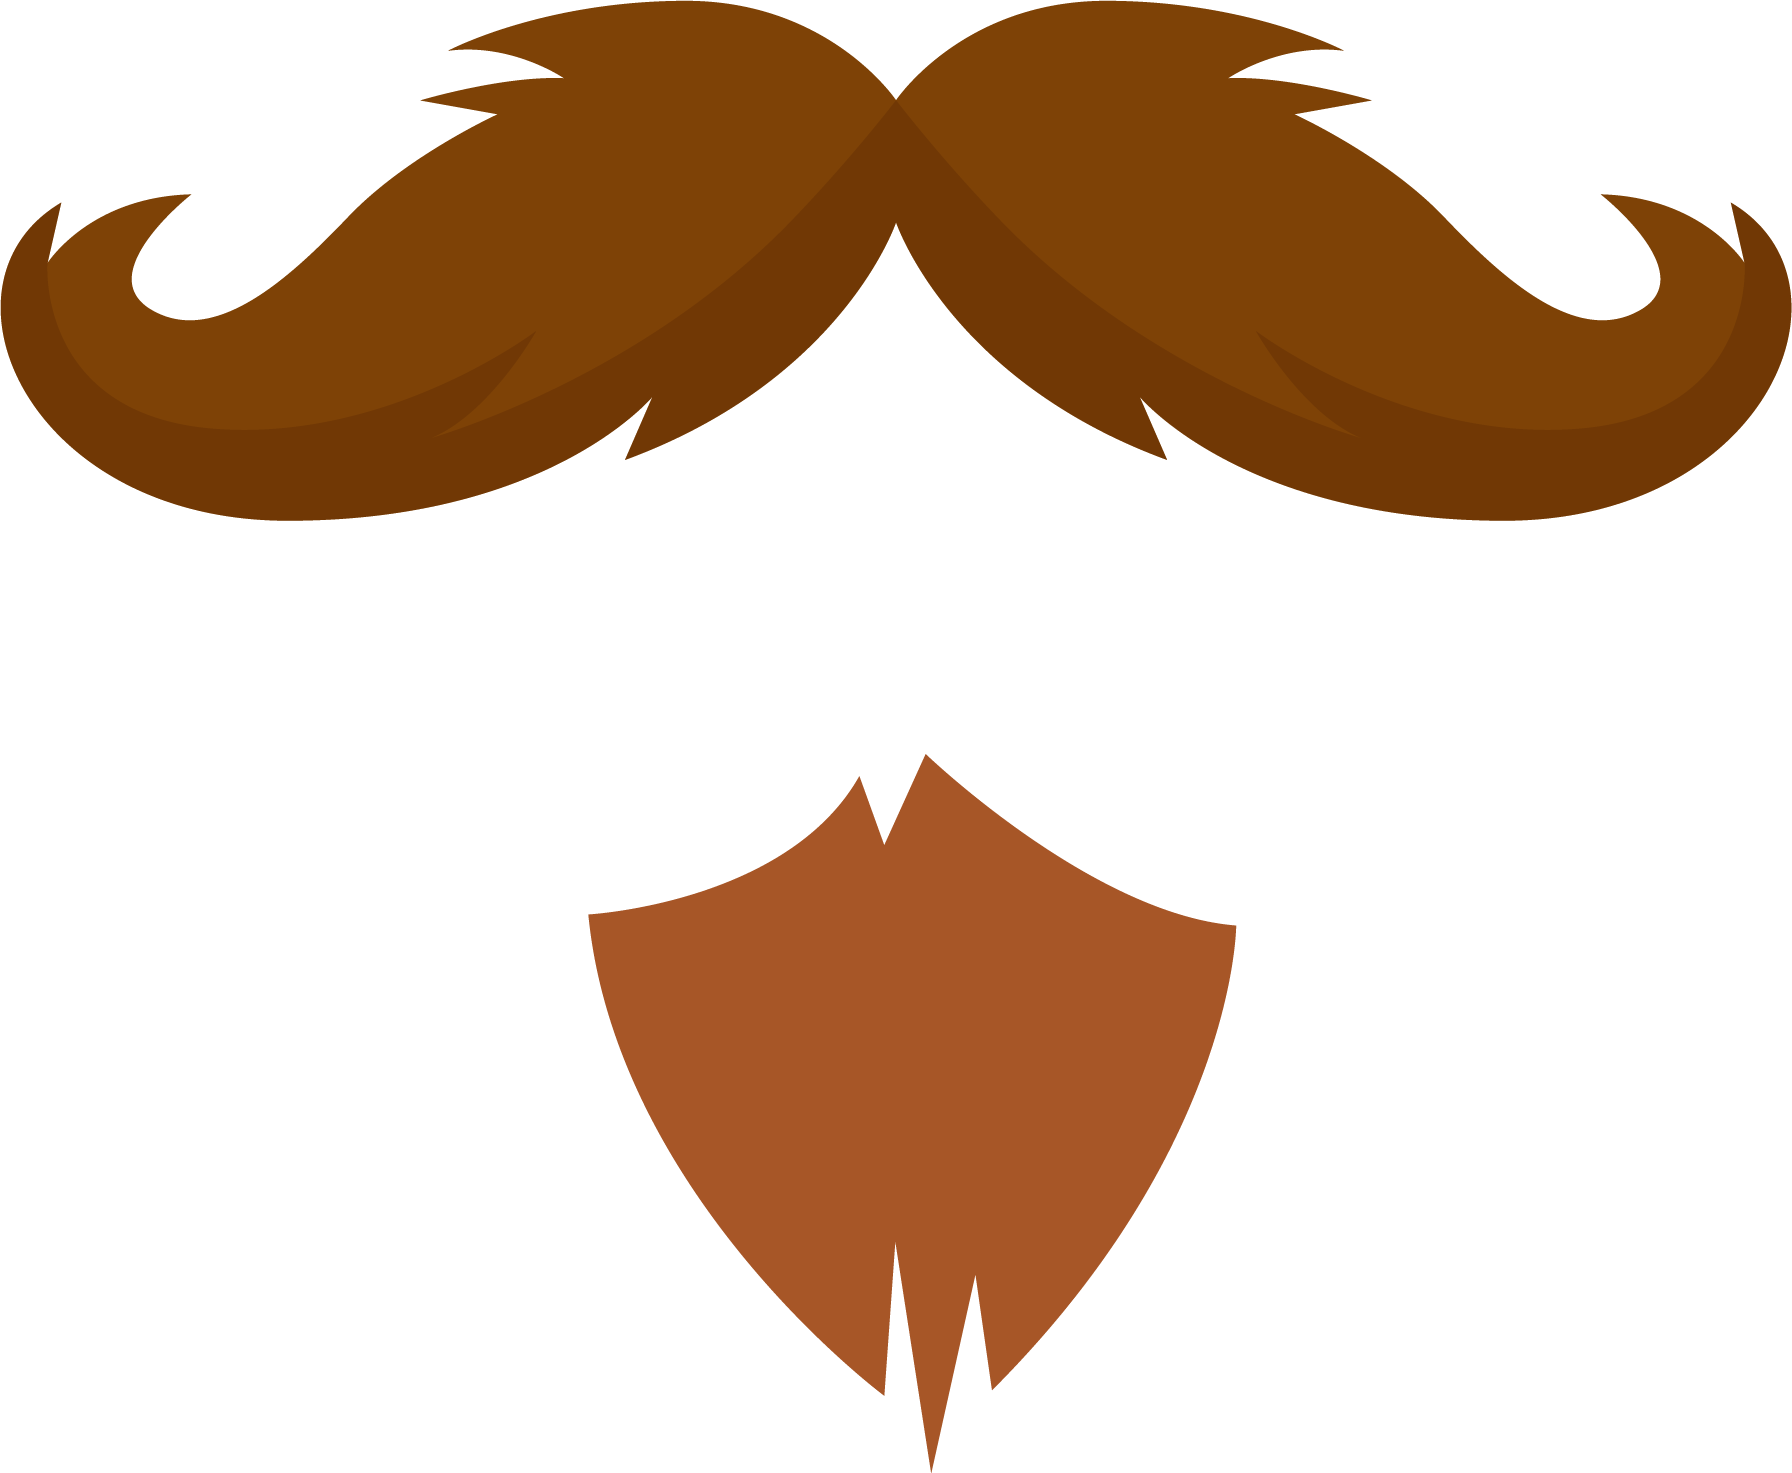 Beard Transparent PNG Pictures - Free Icons and PNG Backgrounds svg black and white